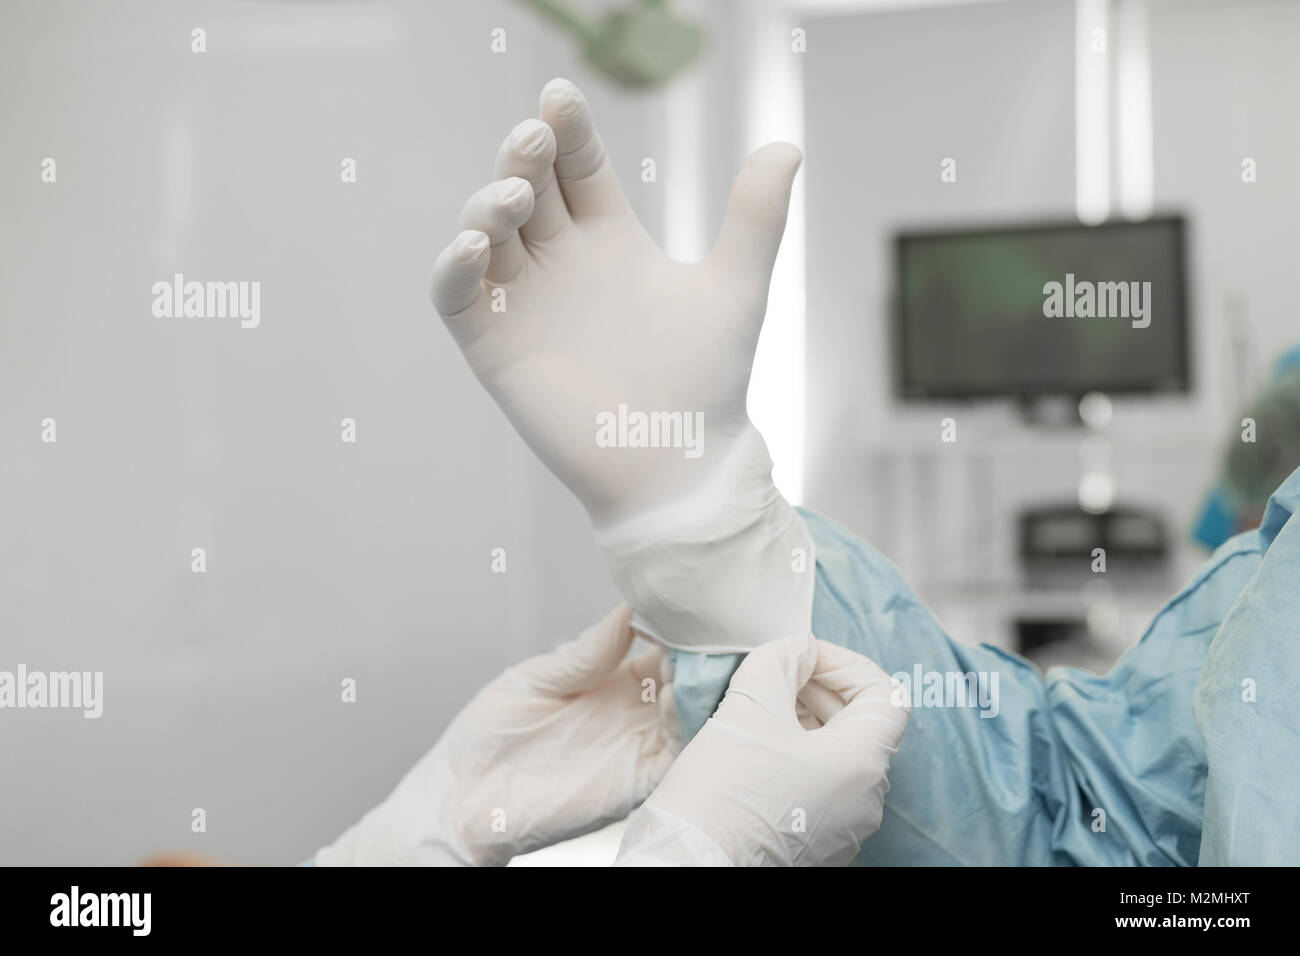 Surgeons are preparing for surgery. The assistant helps the experienced chief surgeon put on sterile rubber gloves. - Stock Image